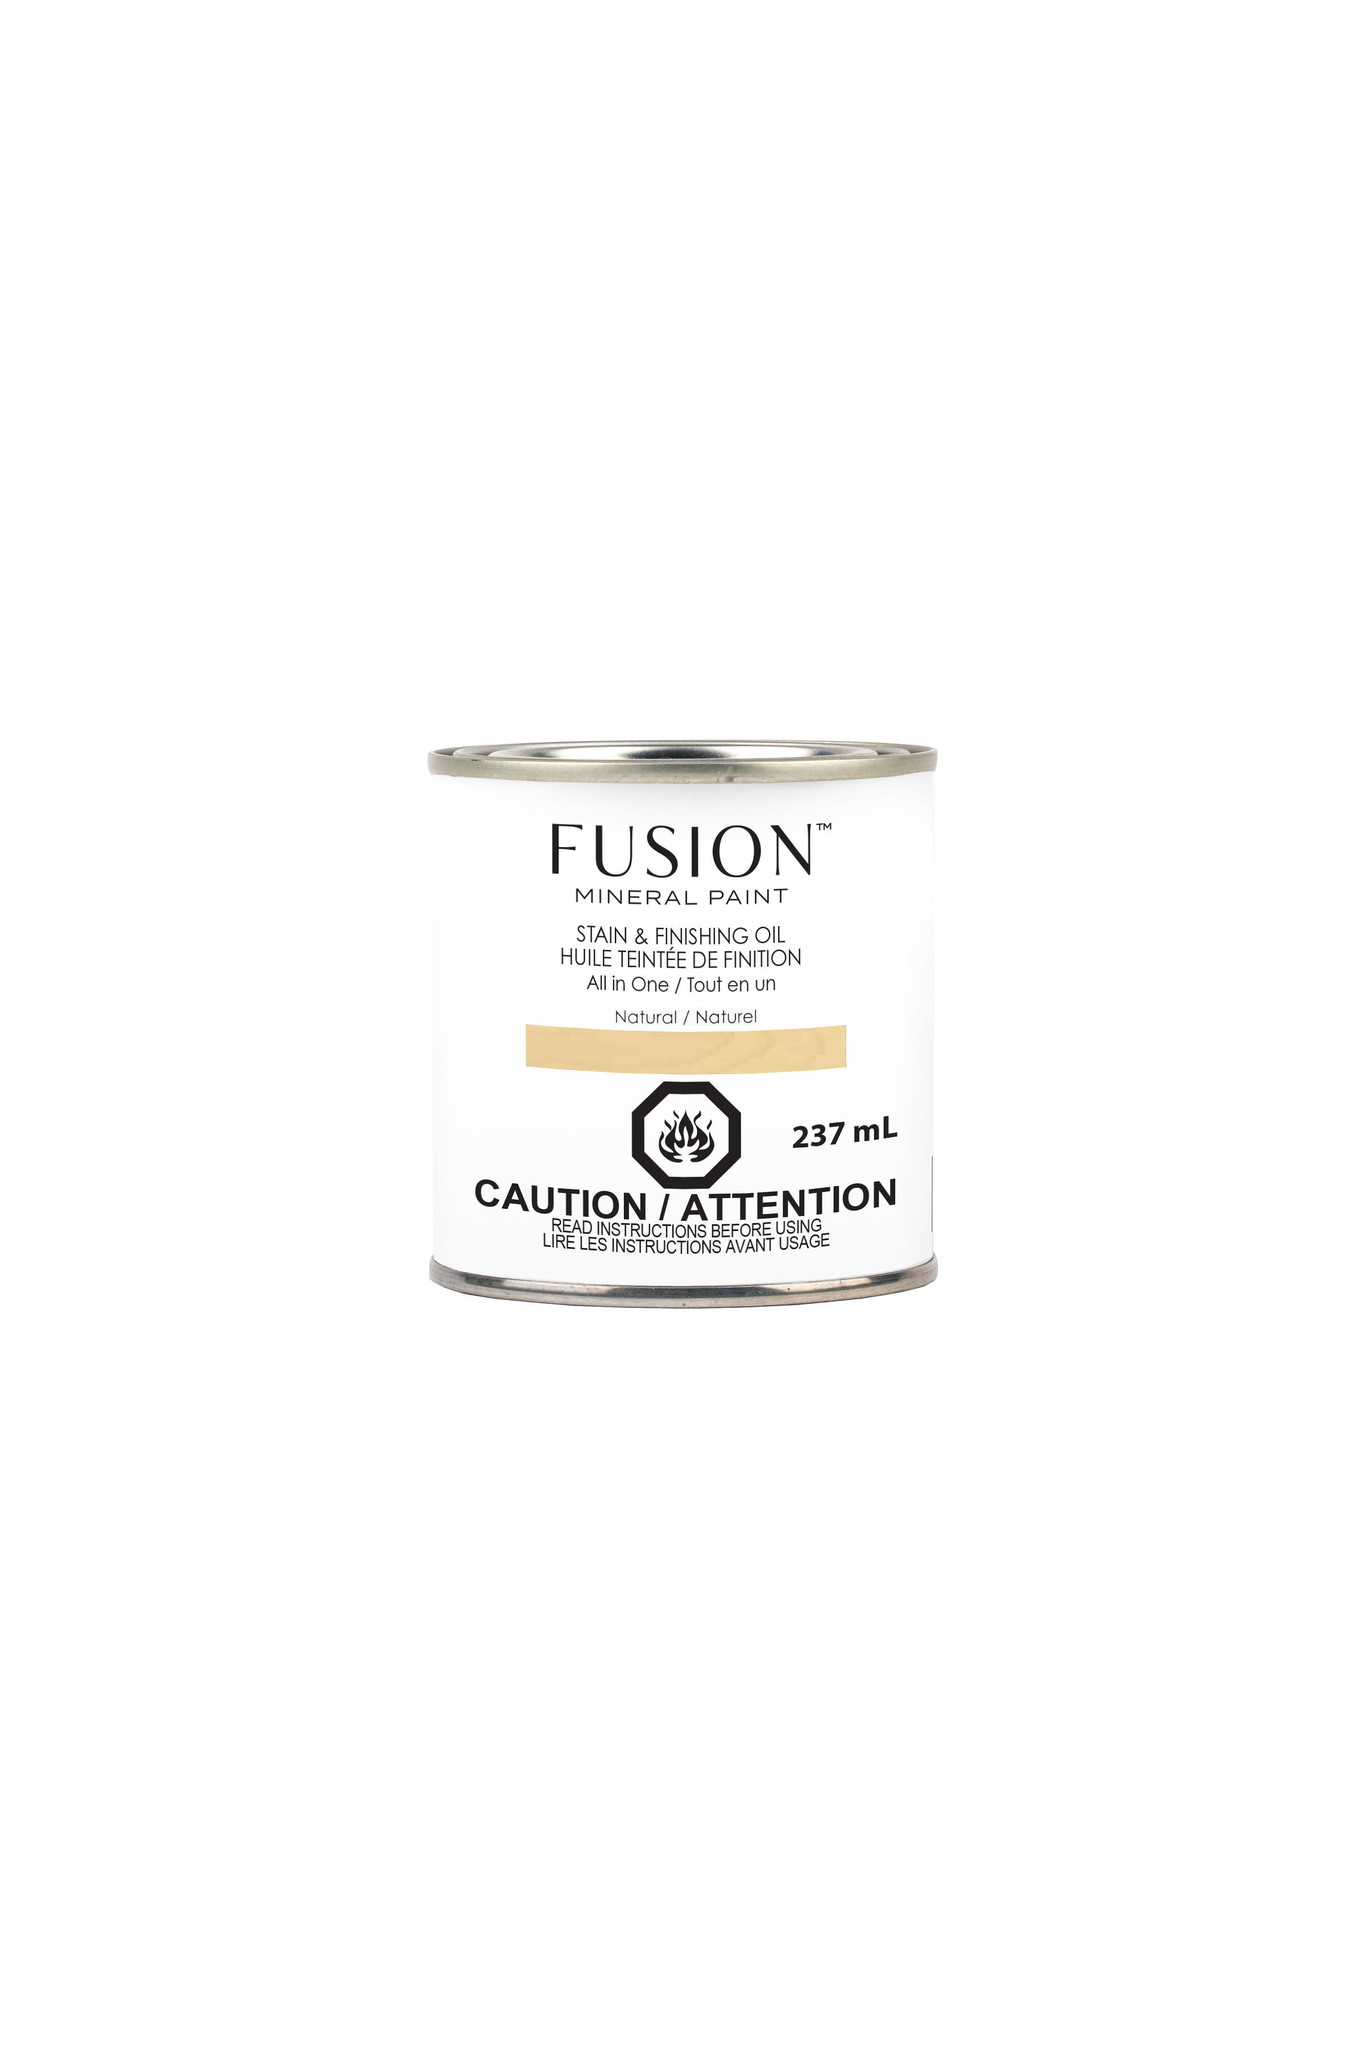 Fusion Mineral Paint Fusion - Stain and Finishing Oil - Natural - 237ml